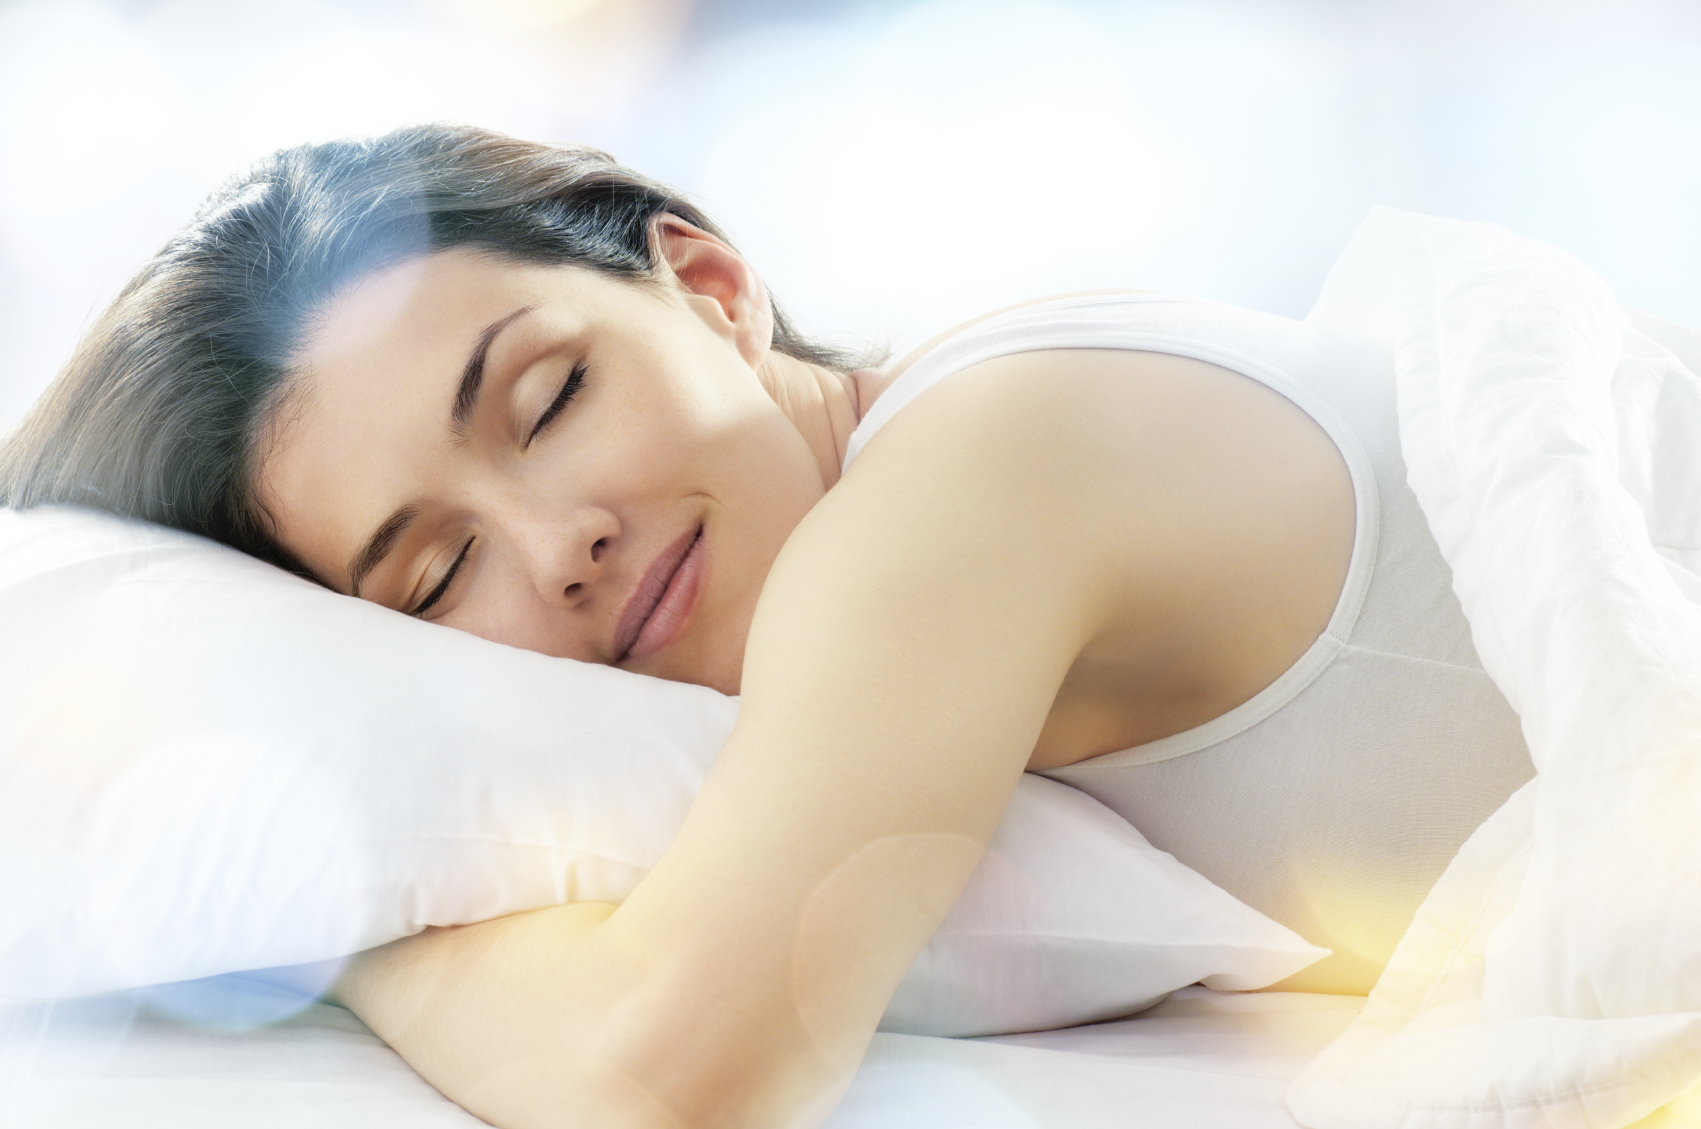 Ever get that foggy, sluggish feeling when you first get up in the ...: isafyi.com/5-ways-to-a-better-nights-sleep